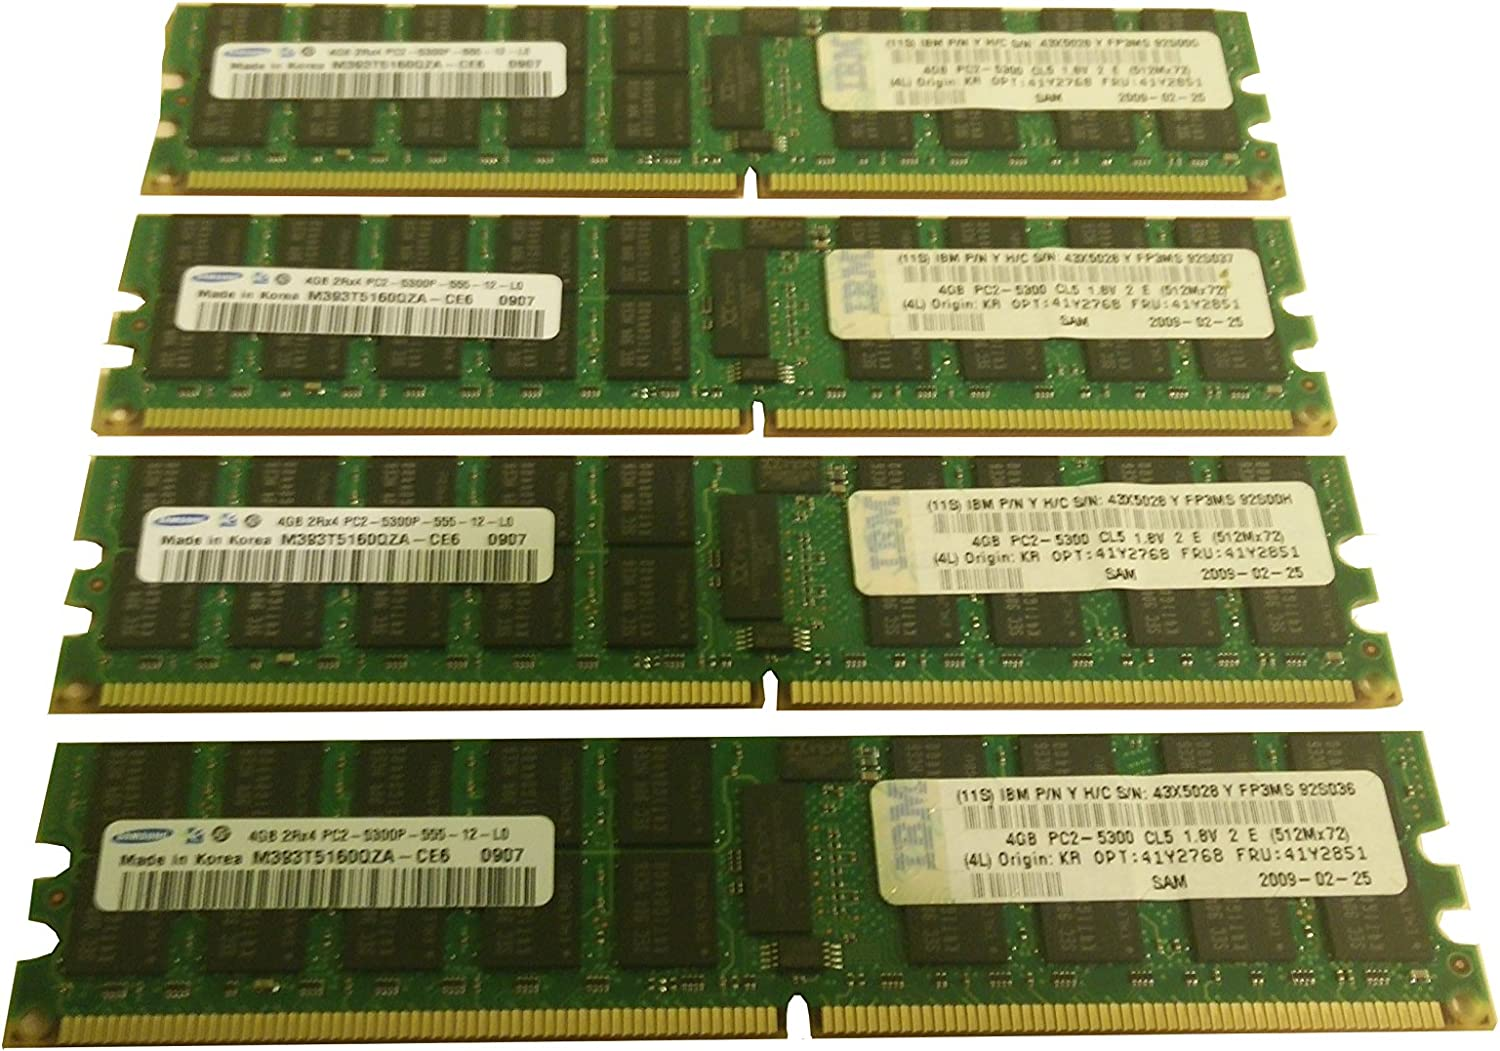 NEW SAMSUNG 4GB PC2-5300 DDR2-667 ECC REG REGISTERED RAM #M393T5160QZA-CE6